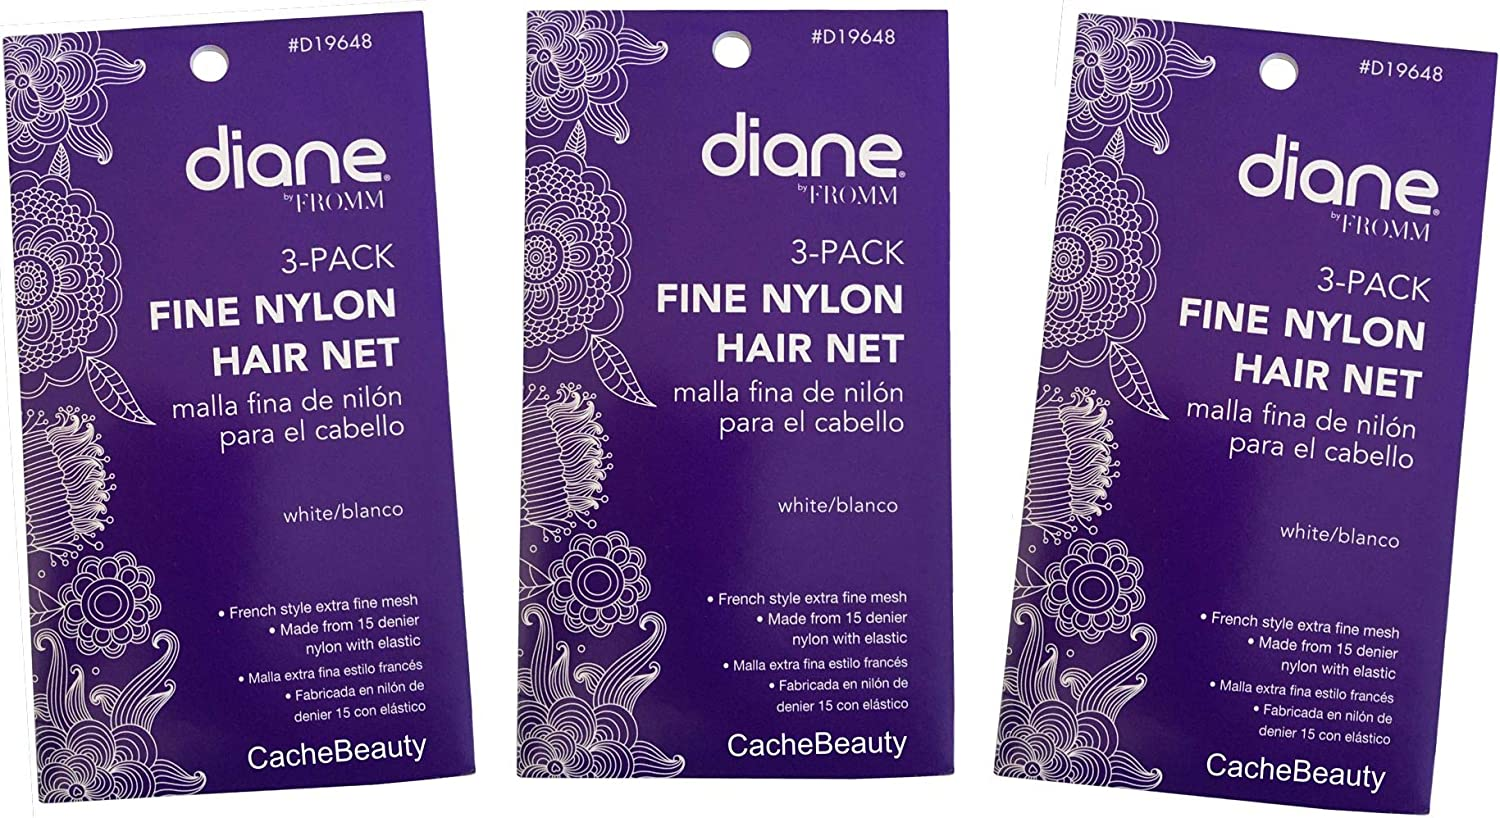 Hair Nets Fine Nylon with Elastic 3 PACKAGES with 3 Nets per package = 9 Nets Total Black